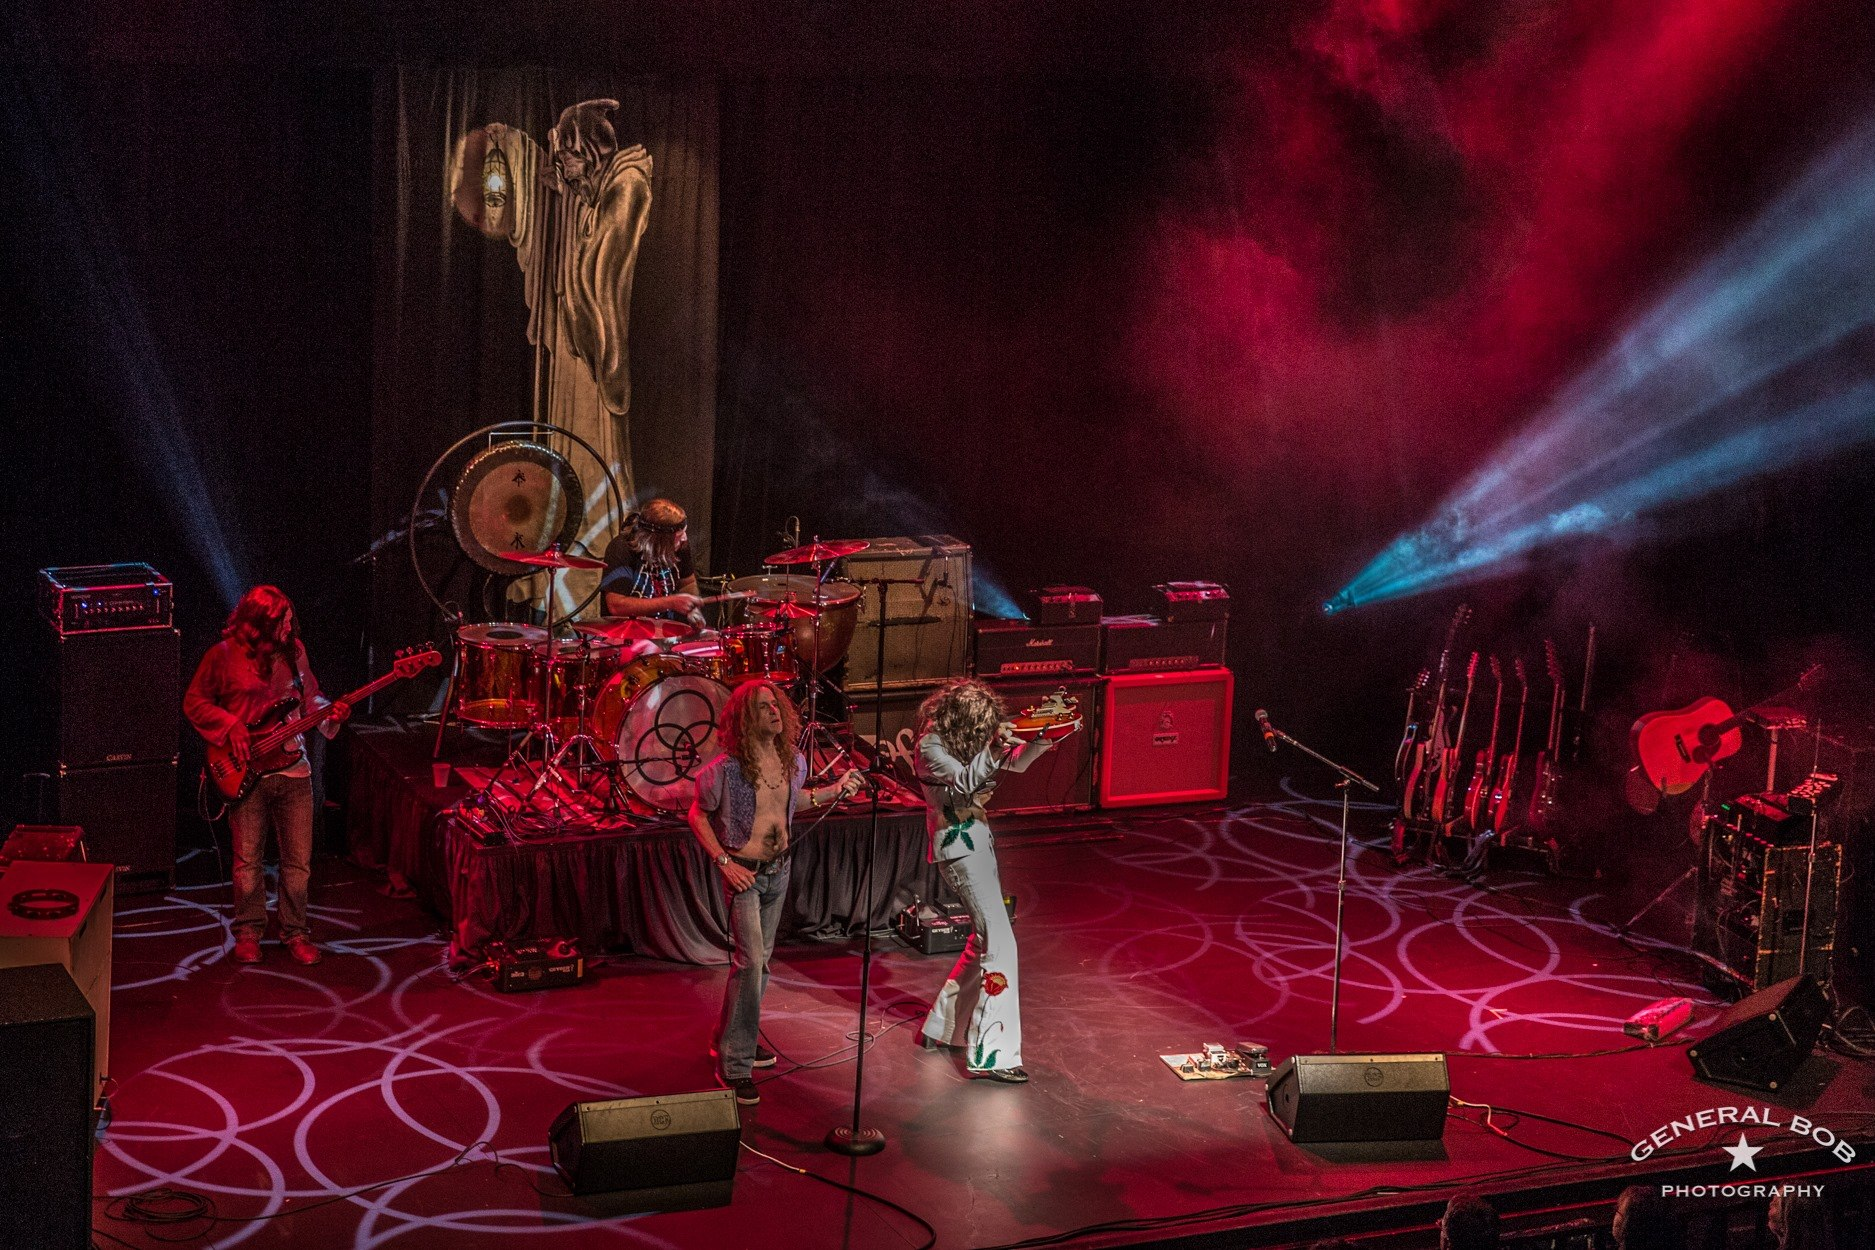 Palace Theater In The Dells Kashmir A Led Zeppelin Tribute